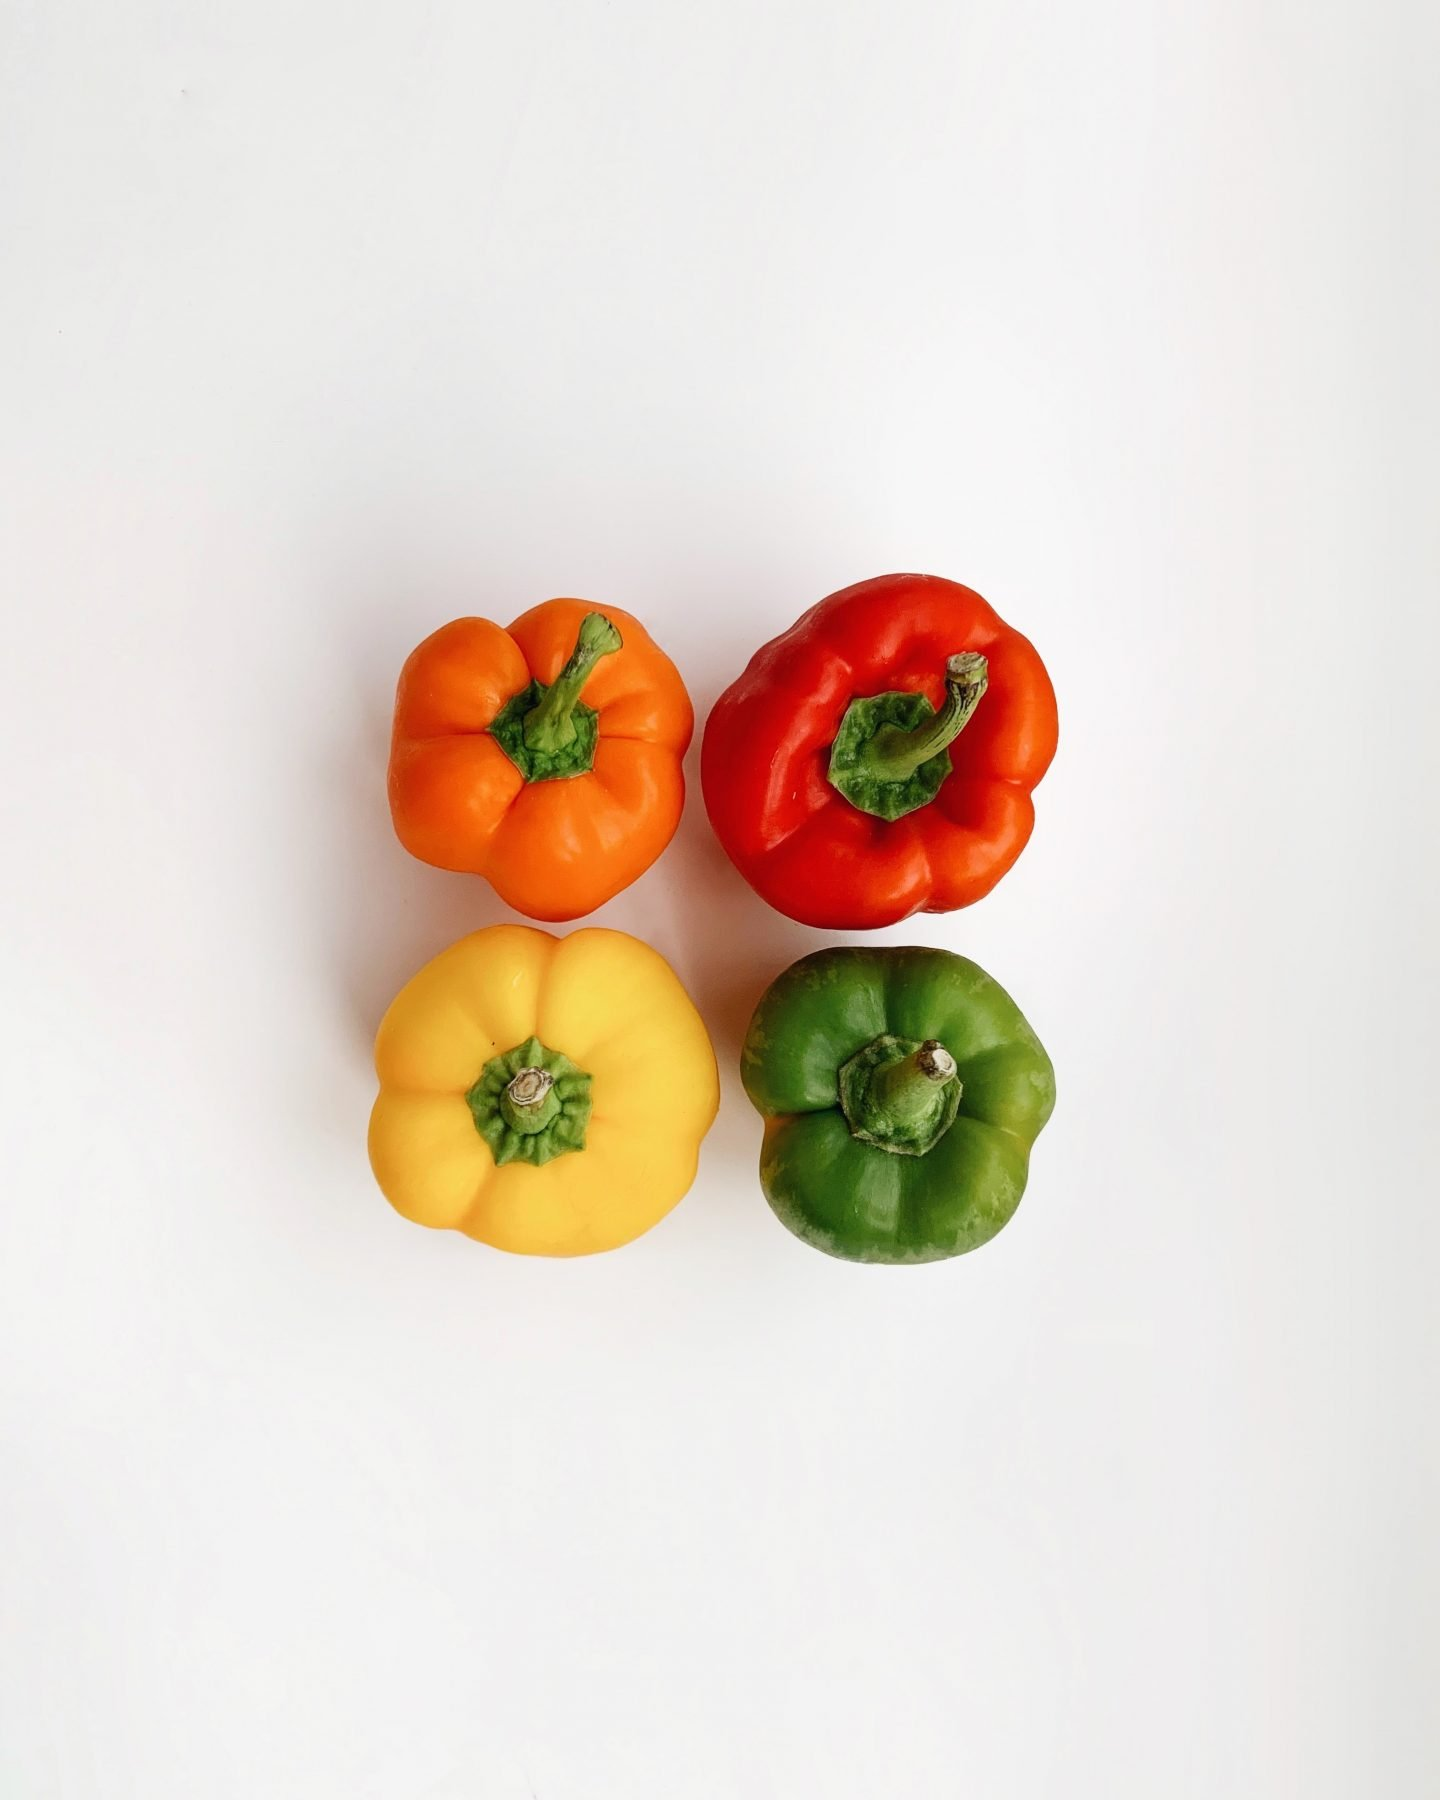 4 capsicums on white surface